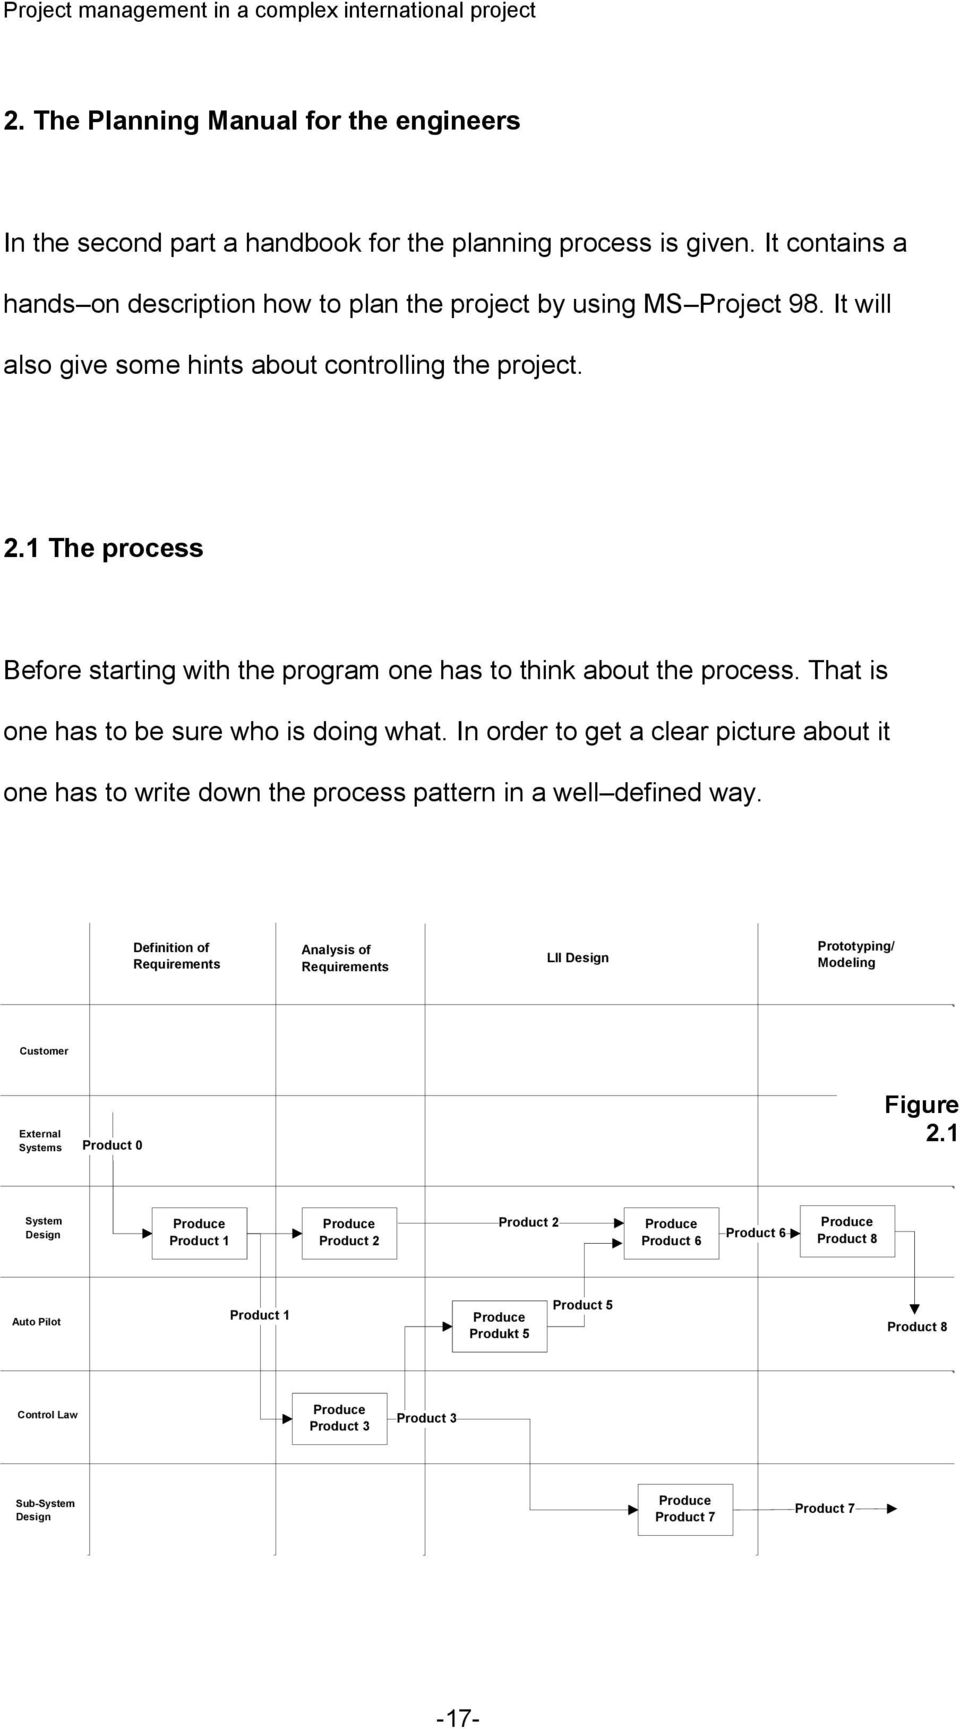 In order to get a clear picture about it one has to write down the process pattern in a well defined way.